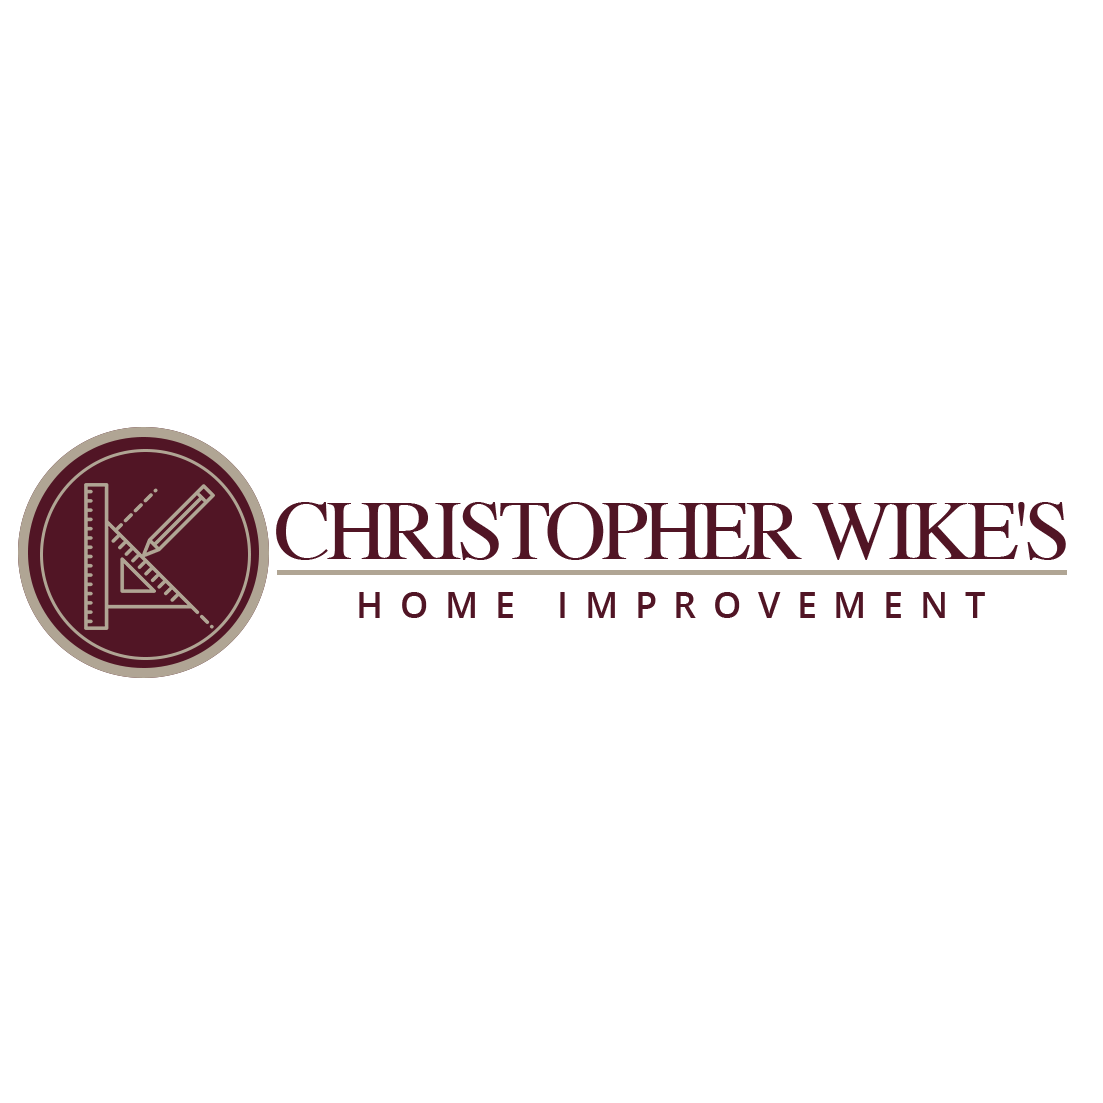 Christopher Wike's Home Improvement